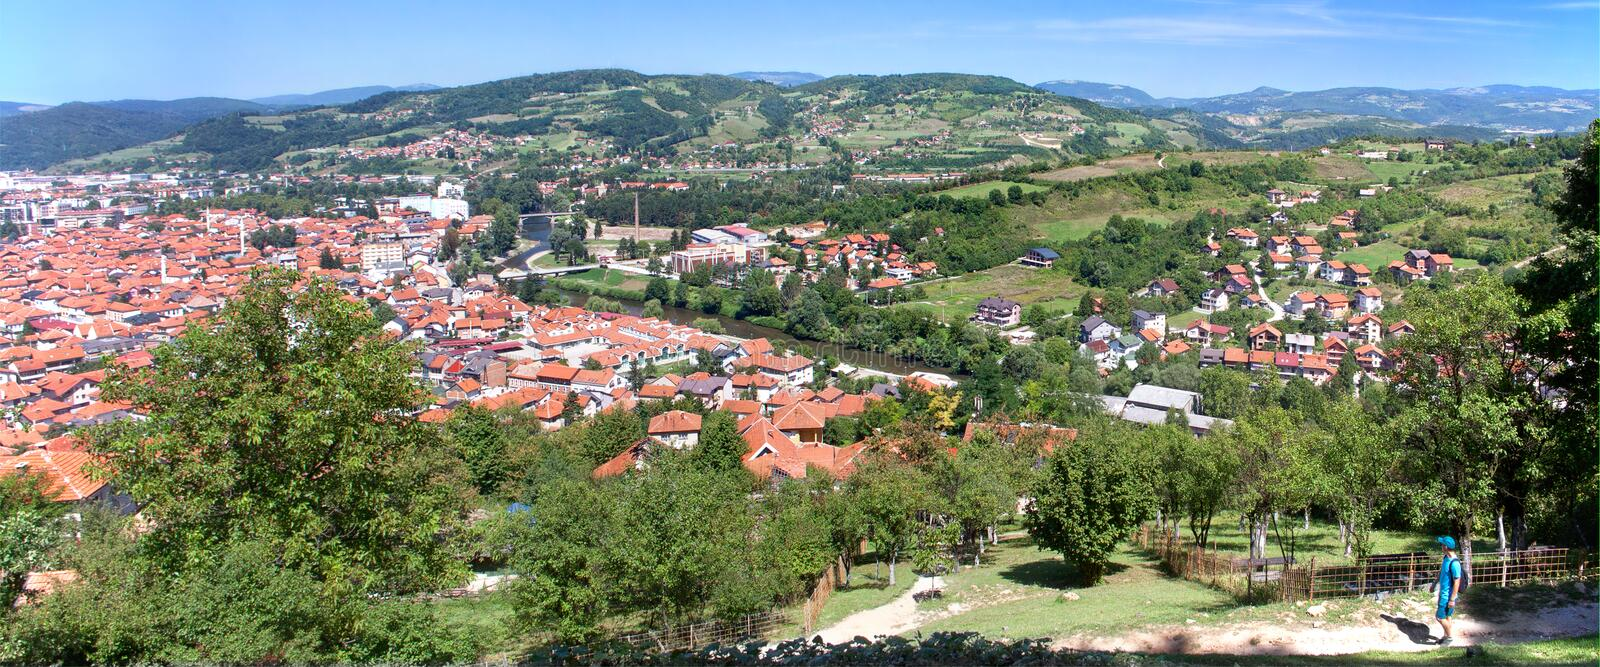 Visoko and Bosna river, Bosnia and Herzegovina, Europa, 18.8.2019. Bosnia and Herzegovina, Visoko city and Bosna river, Europe, large panorama picture in summer stock photography